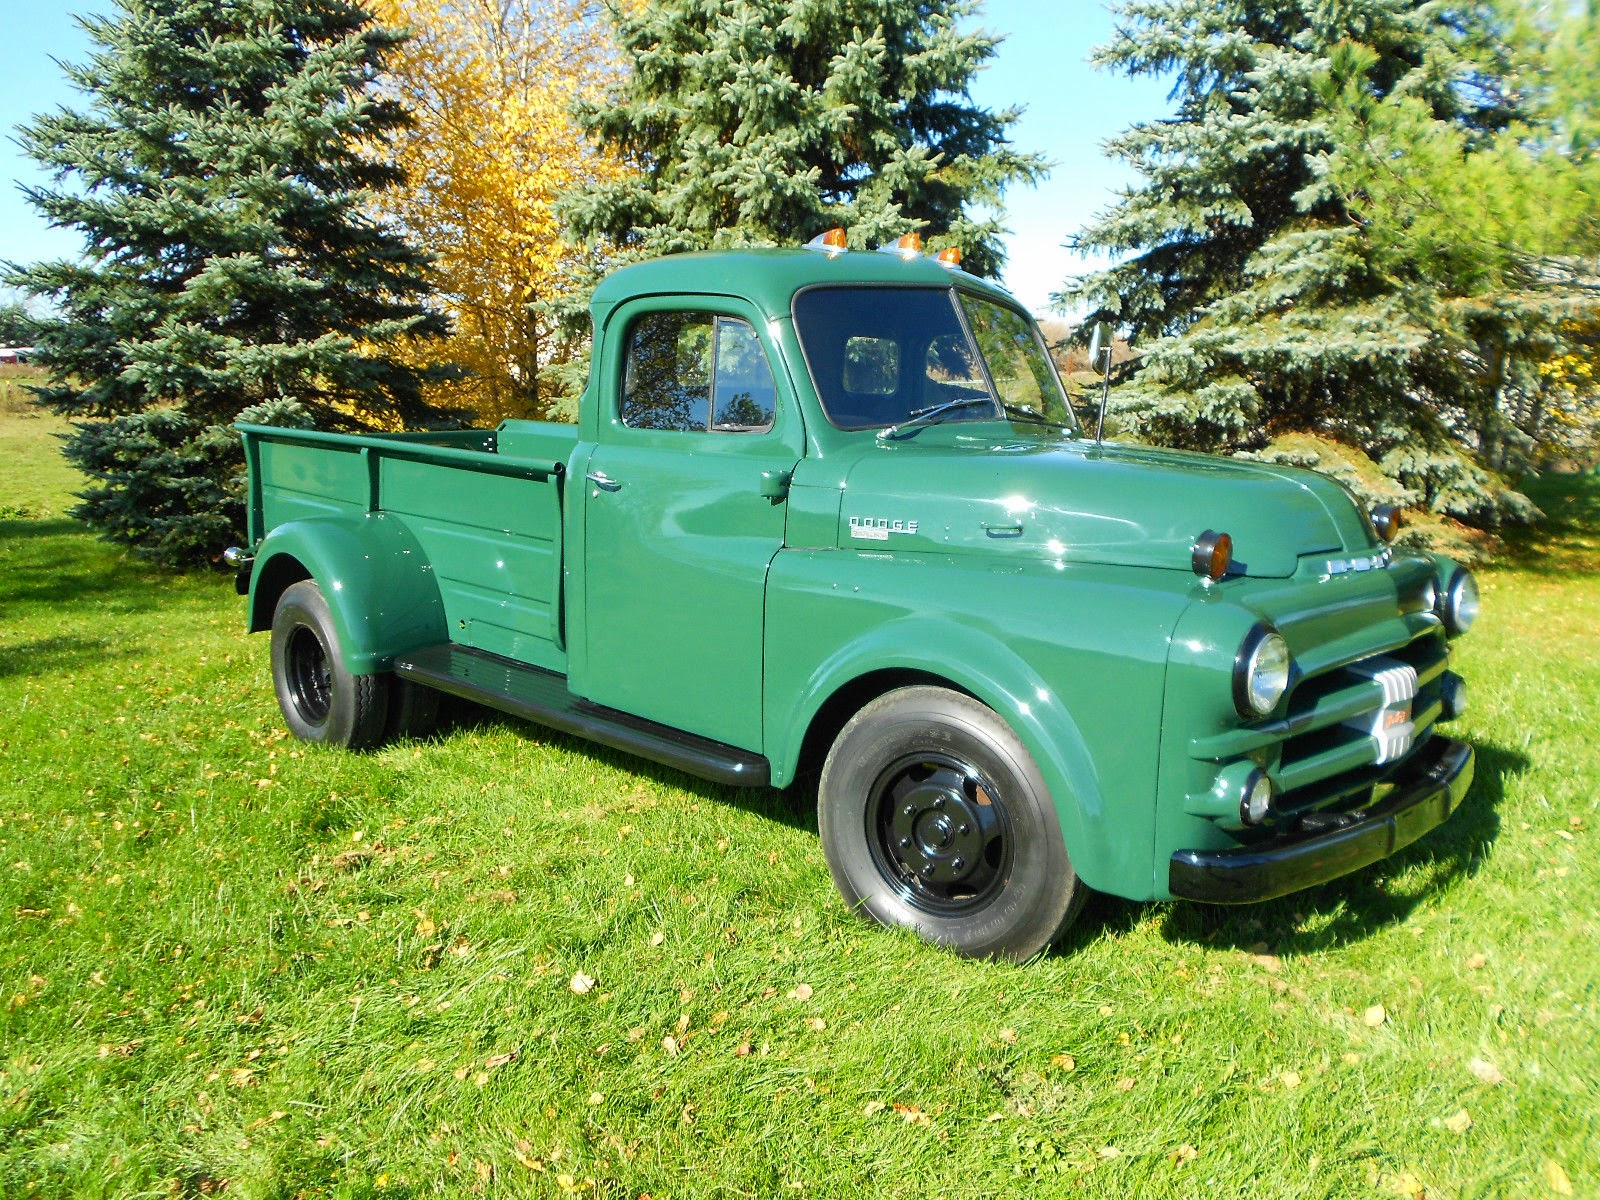 rare 1951 dodge b series dually pickup truck auto restorationice. Black Bedroom Furniture Sets. Home Design Ideas